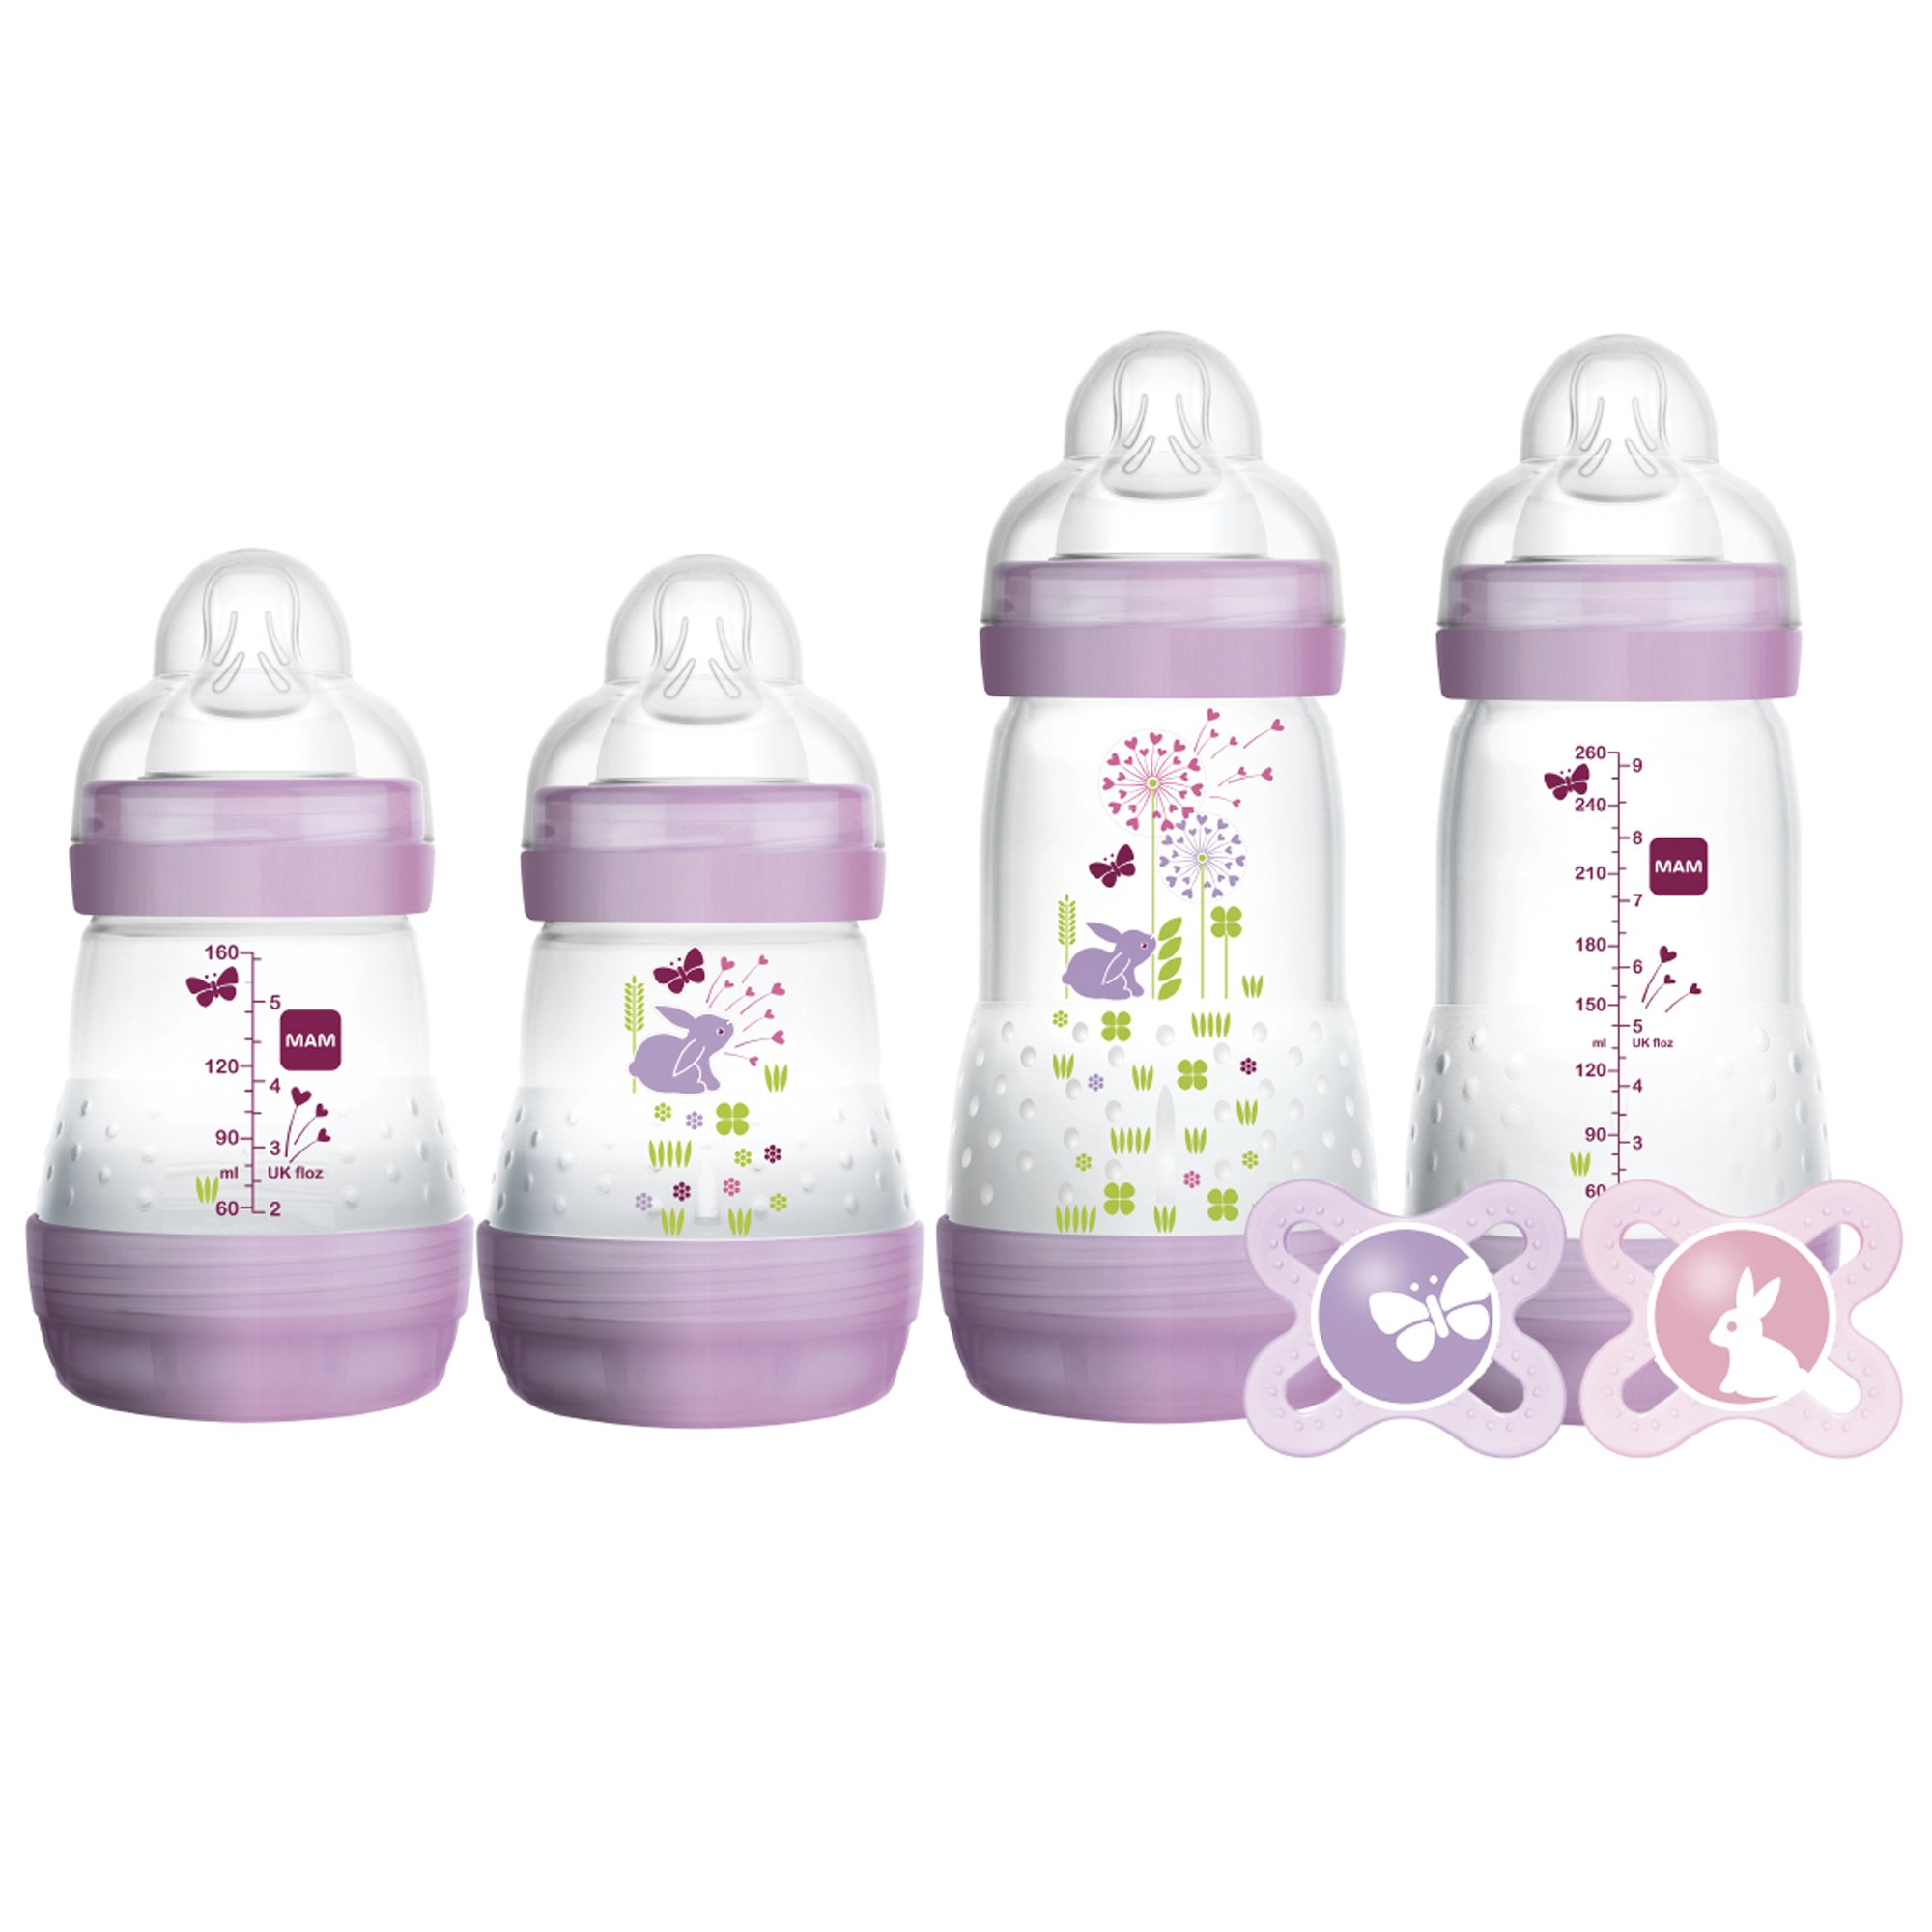 MAM Gift Set, Best Pacifiers and Baby Bottles for Newborn Breastfed Babies, ''Feed & Soothe'' Set, Girl,  6-Count by MAM